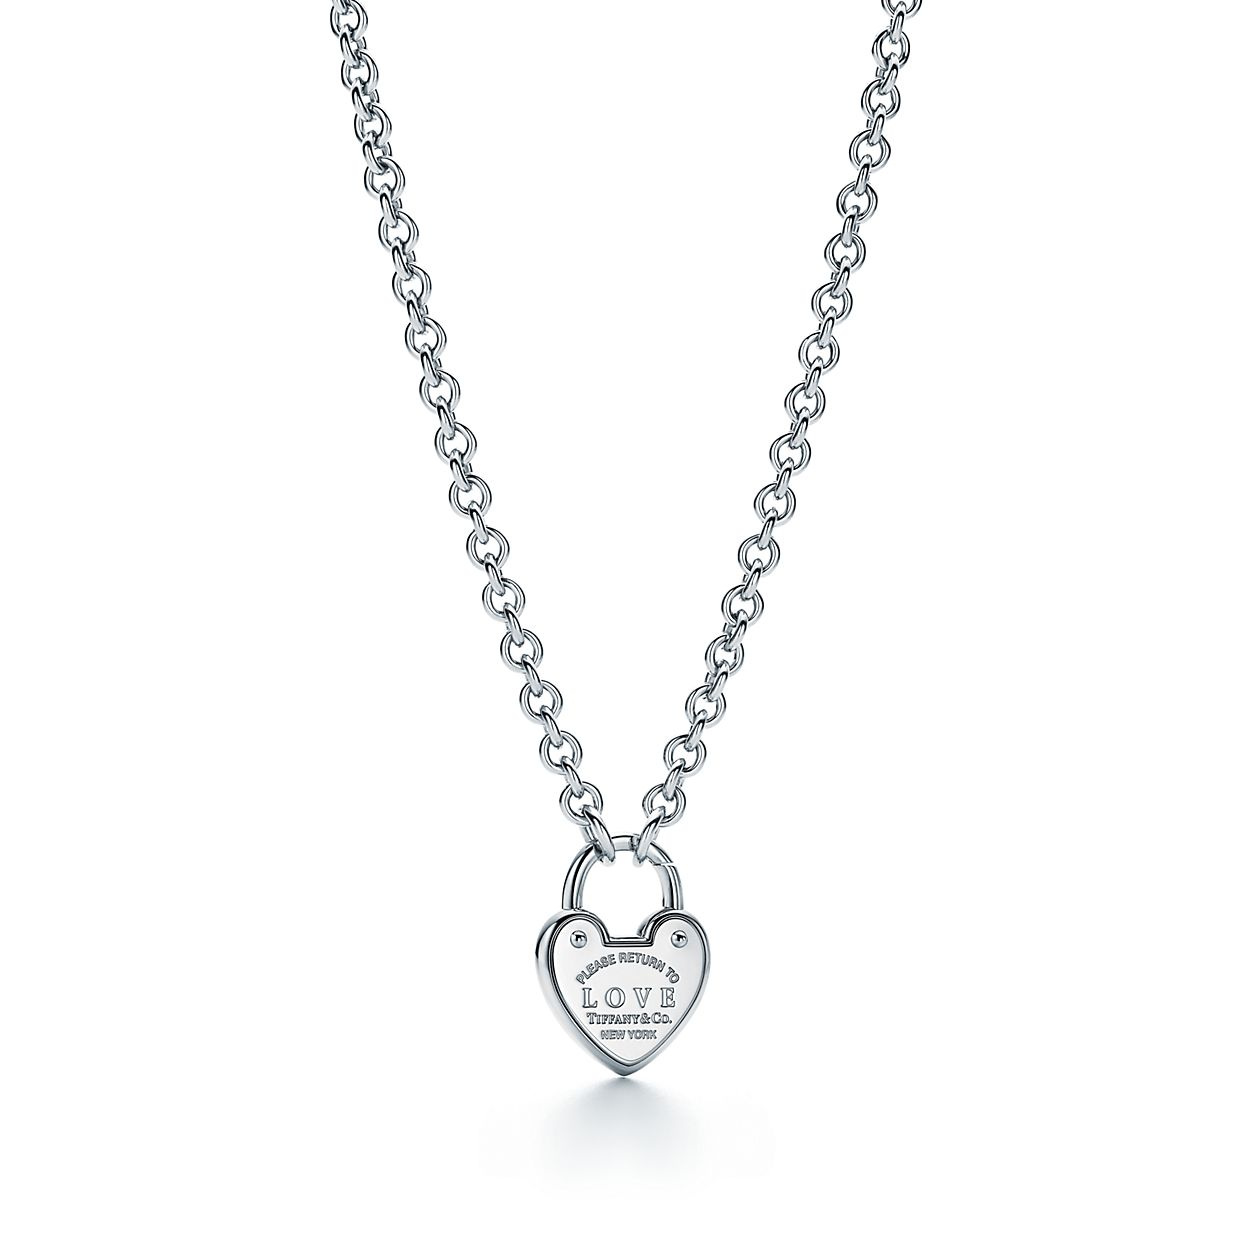 Return to Tiffany Love lock charm in sterling silver Tiffany & Co. RJ3I7